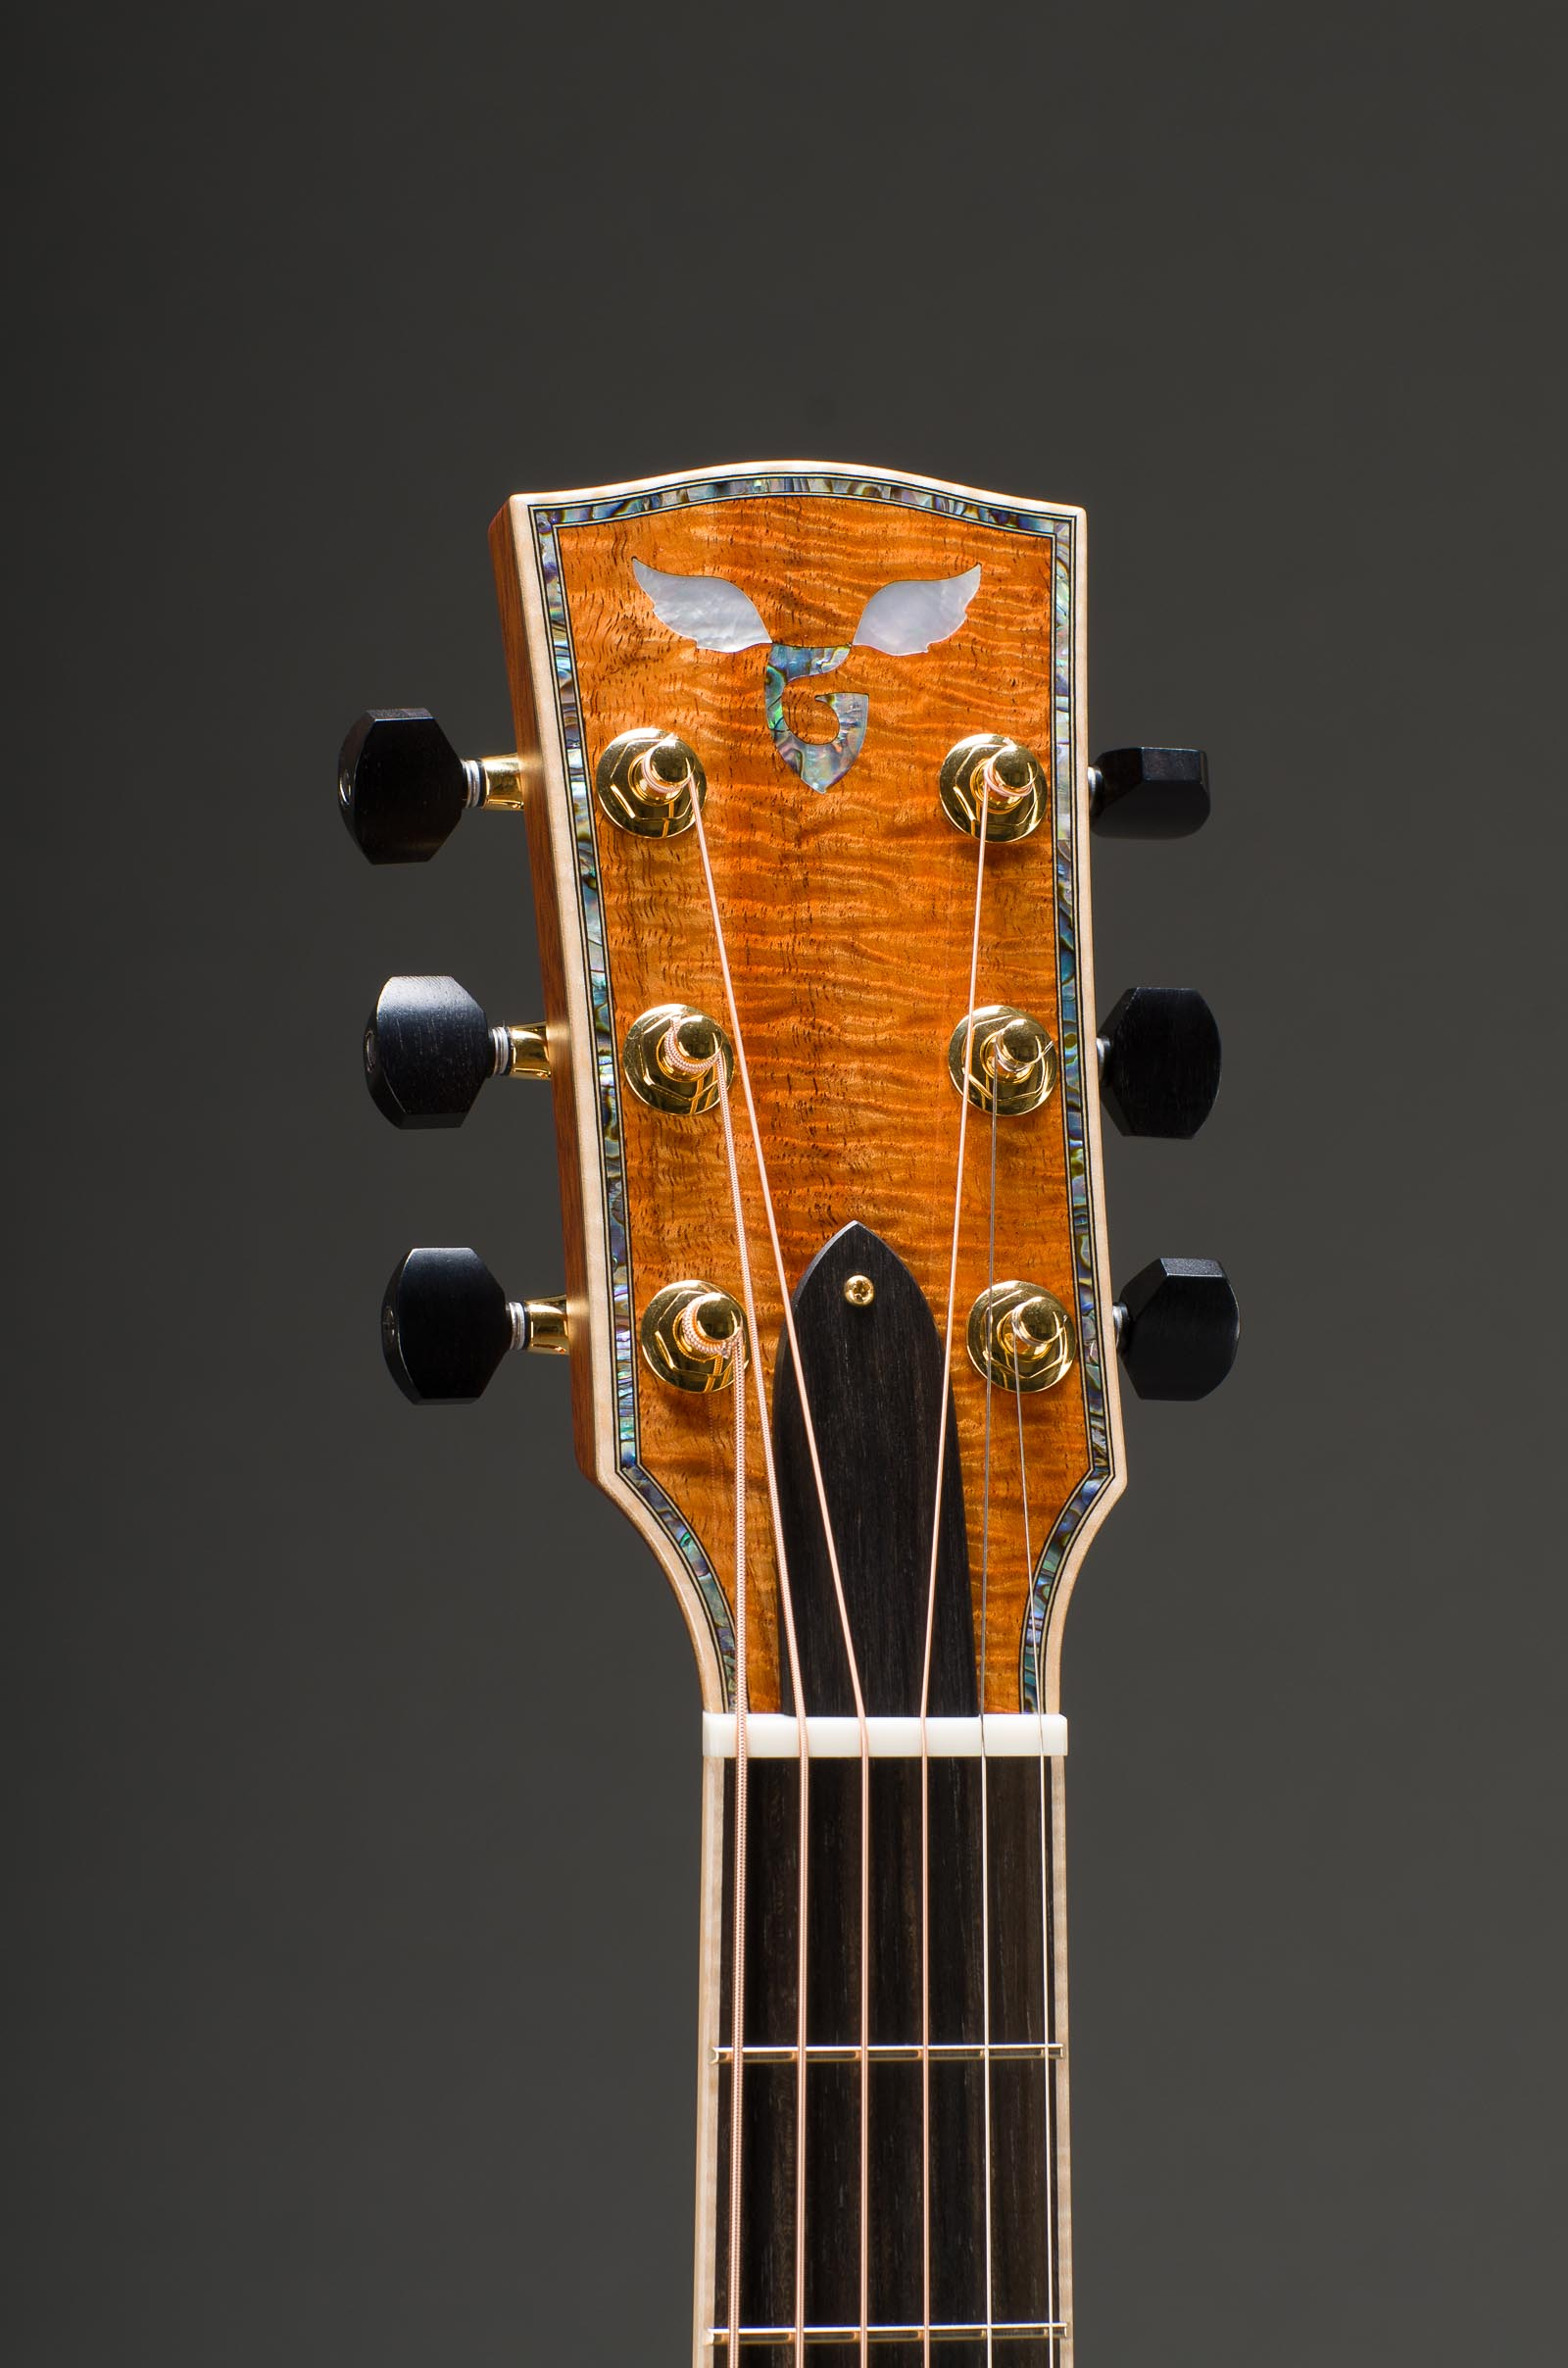 14-Fret Parlor Size Peghead - Figured Hawaiian Koa Veneer, Fancy Paua G - MOP Wings, & Curly Maple Binding- Including Matching Fretboard Option, Fancy Paua Peghead Border Inlay Option, Gold Gotoh 510 Mini Tuners with Ebony Buttons